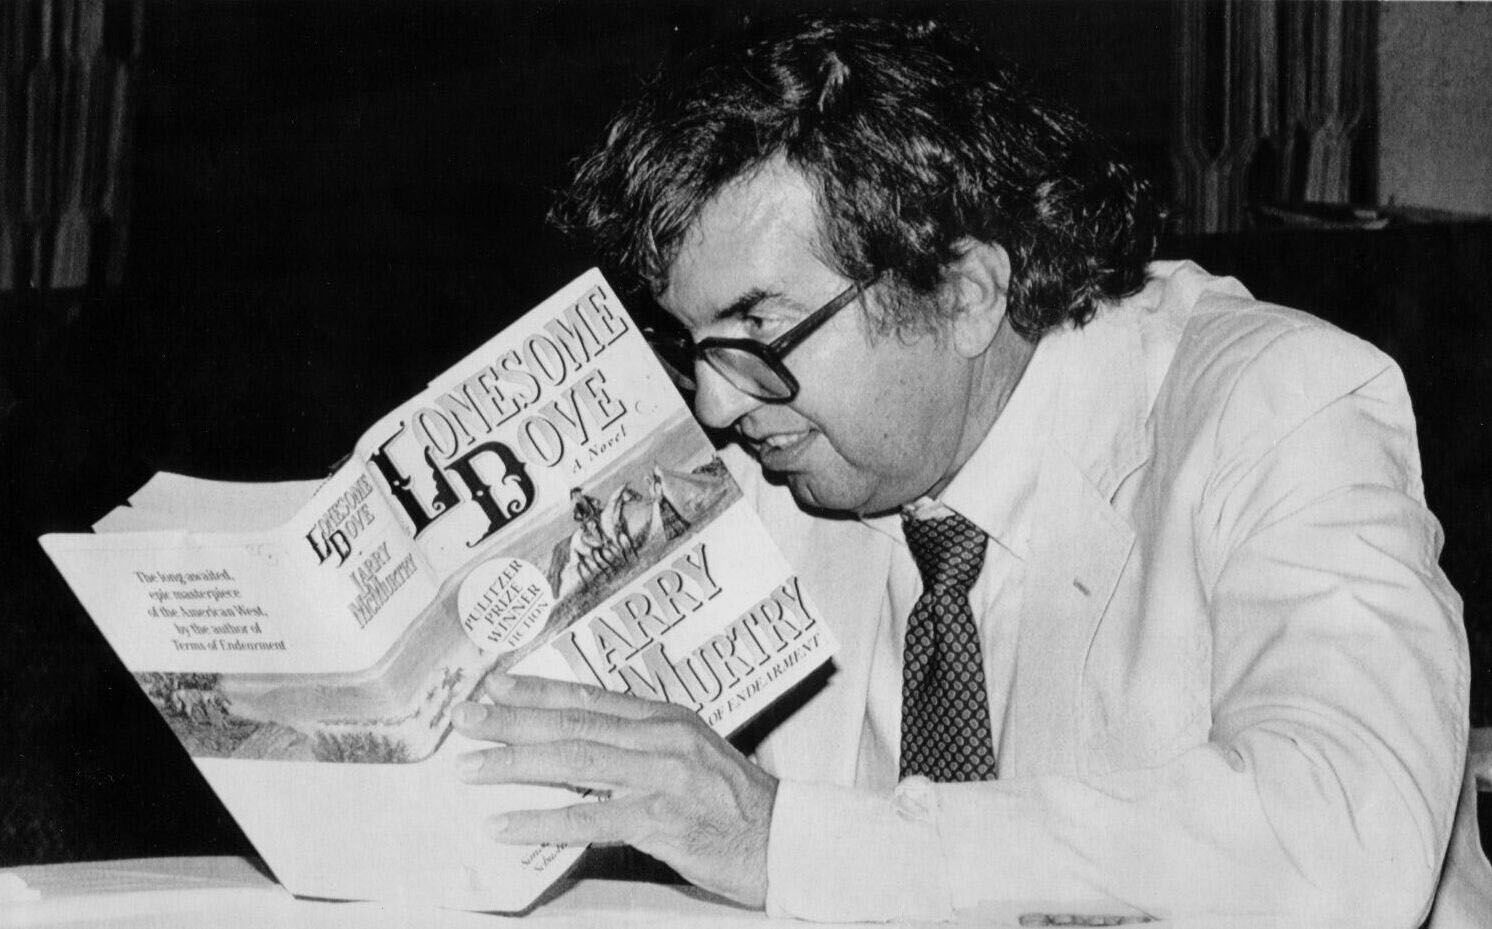 Pulitzer prize winning author Larry McMurtry autographs a copy of Lonesome Dove during a 1986 visit to North Texas State University (now the University of North Texas) in Denton, before speaking about Texas novels.